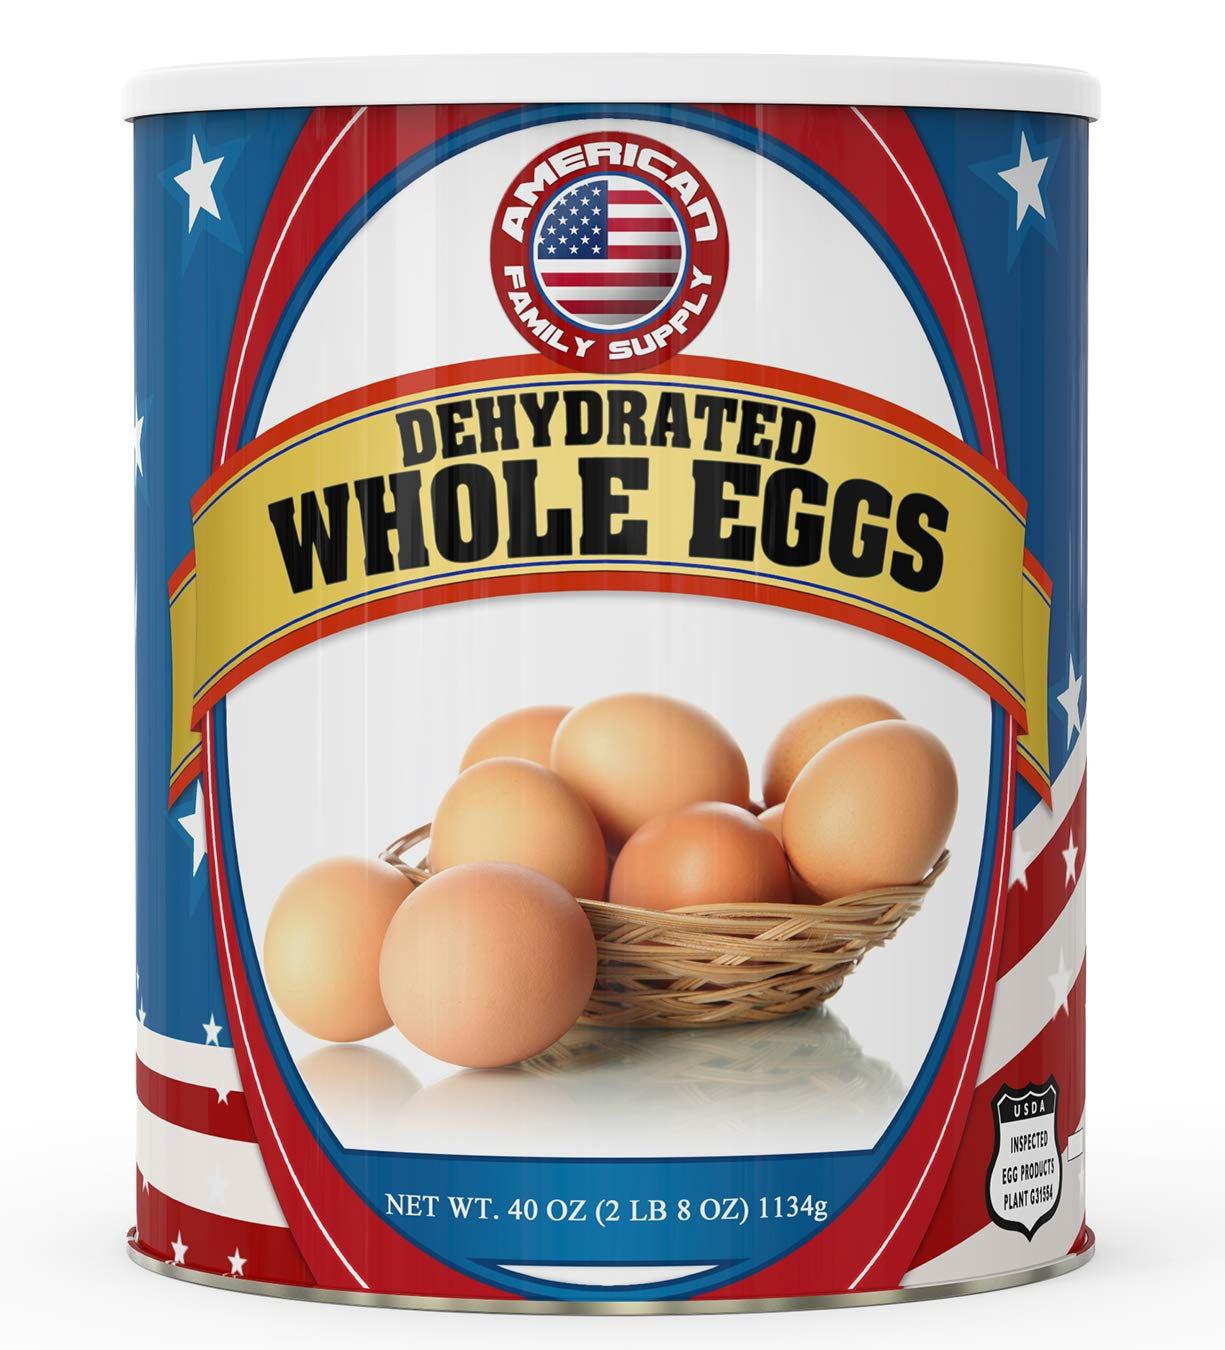 Fresh and Honest Foods Dehydrated Whole Eggs 40 OZ #10 Can (94 Servings). Up to 10+ Years Shelf Life. Perfect for Emergencies, Food Storage, Survival, Camping, and more.